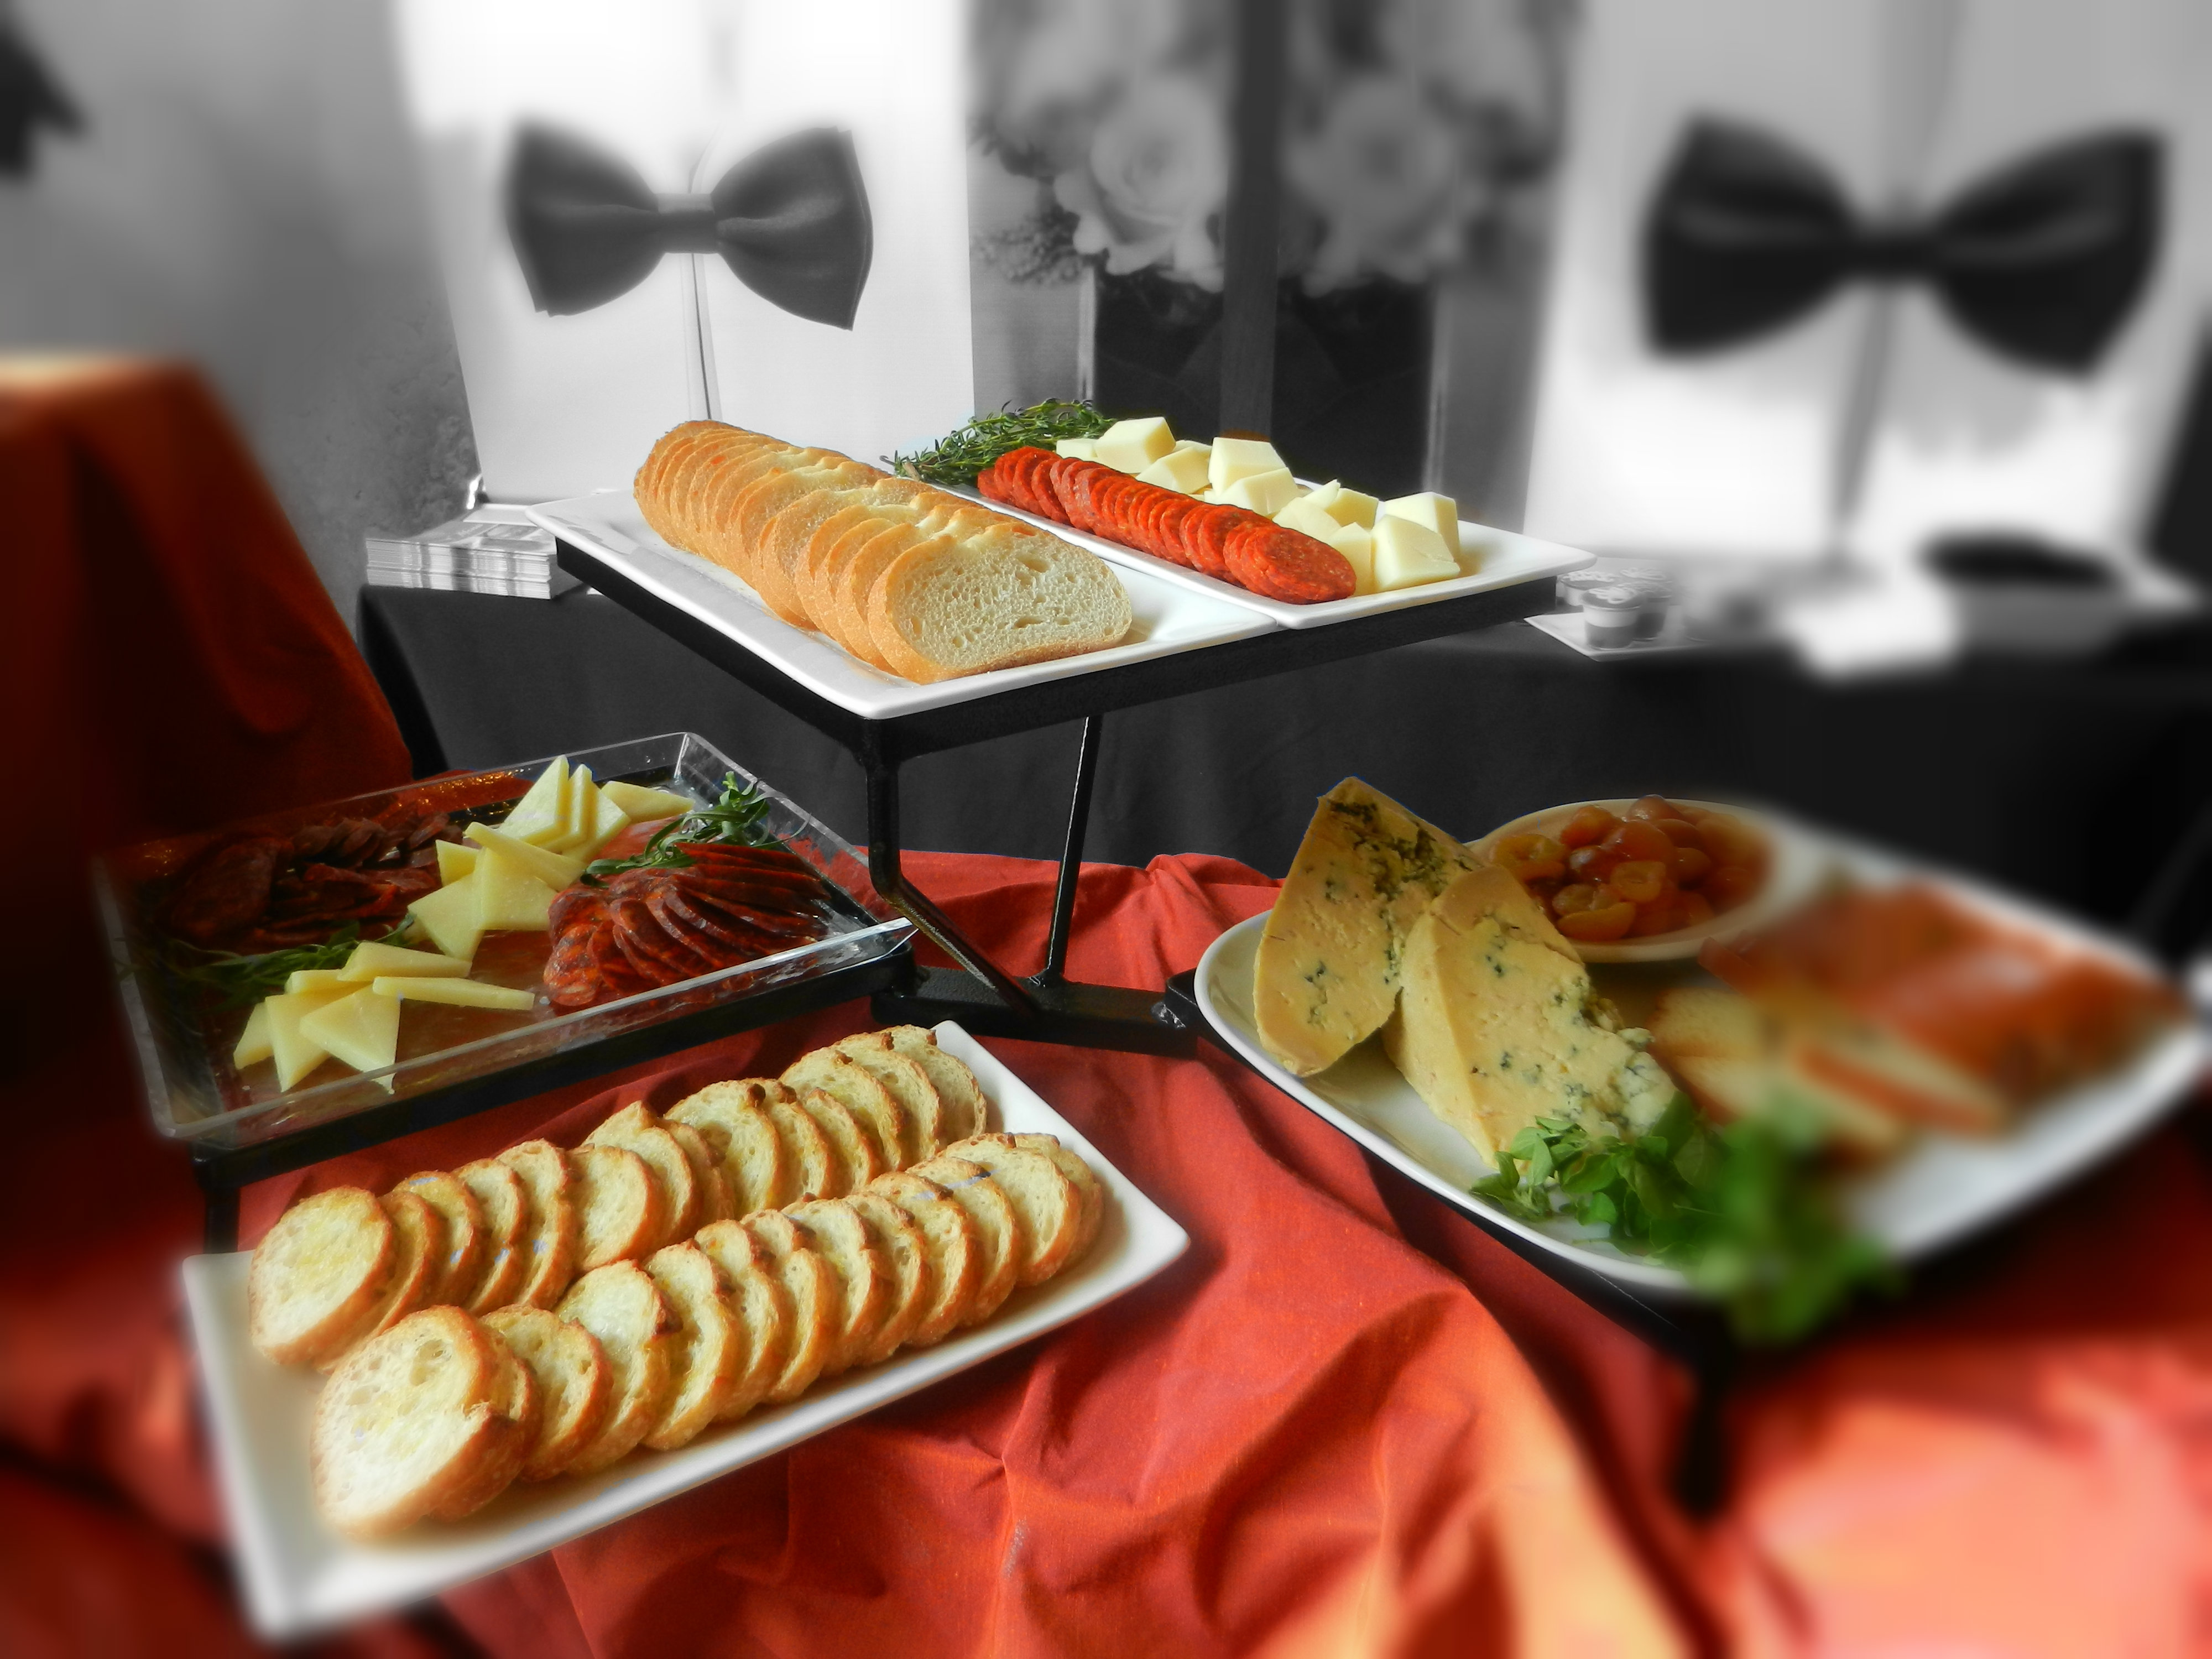 EditedDSCN Chefs Table Catering Catering In Philadelphia PA - The chef's table catering